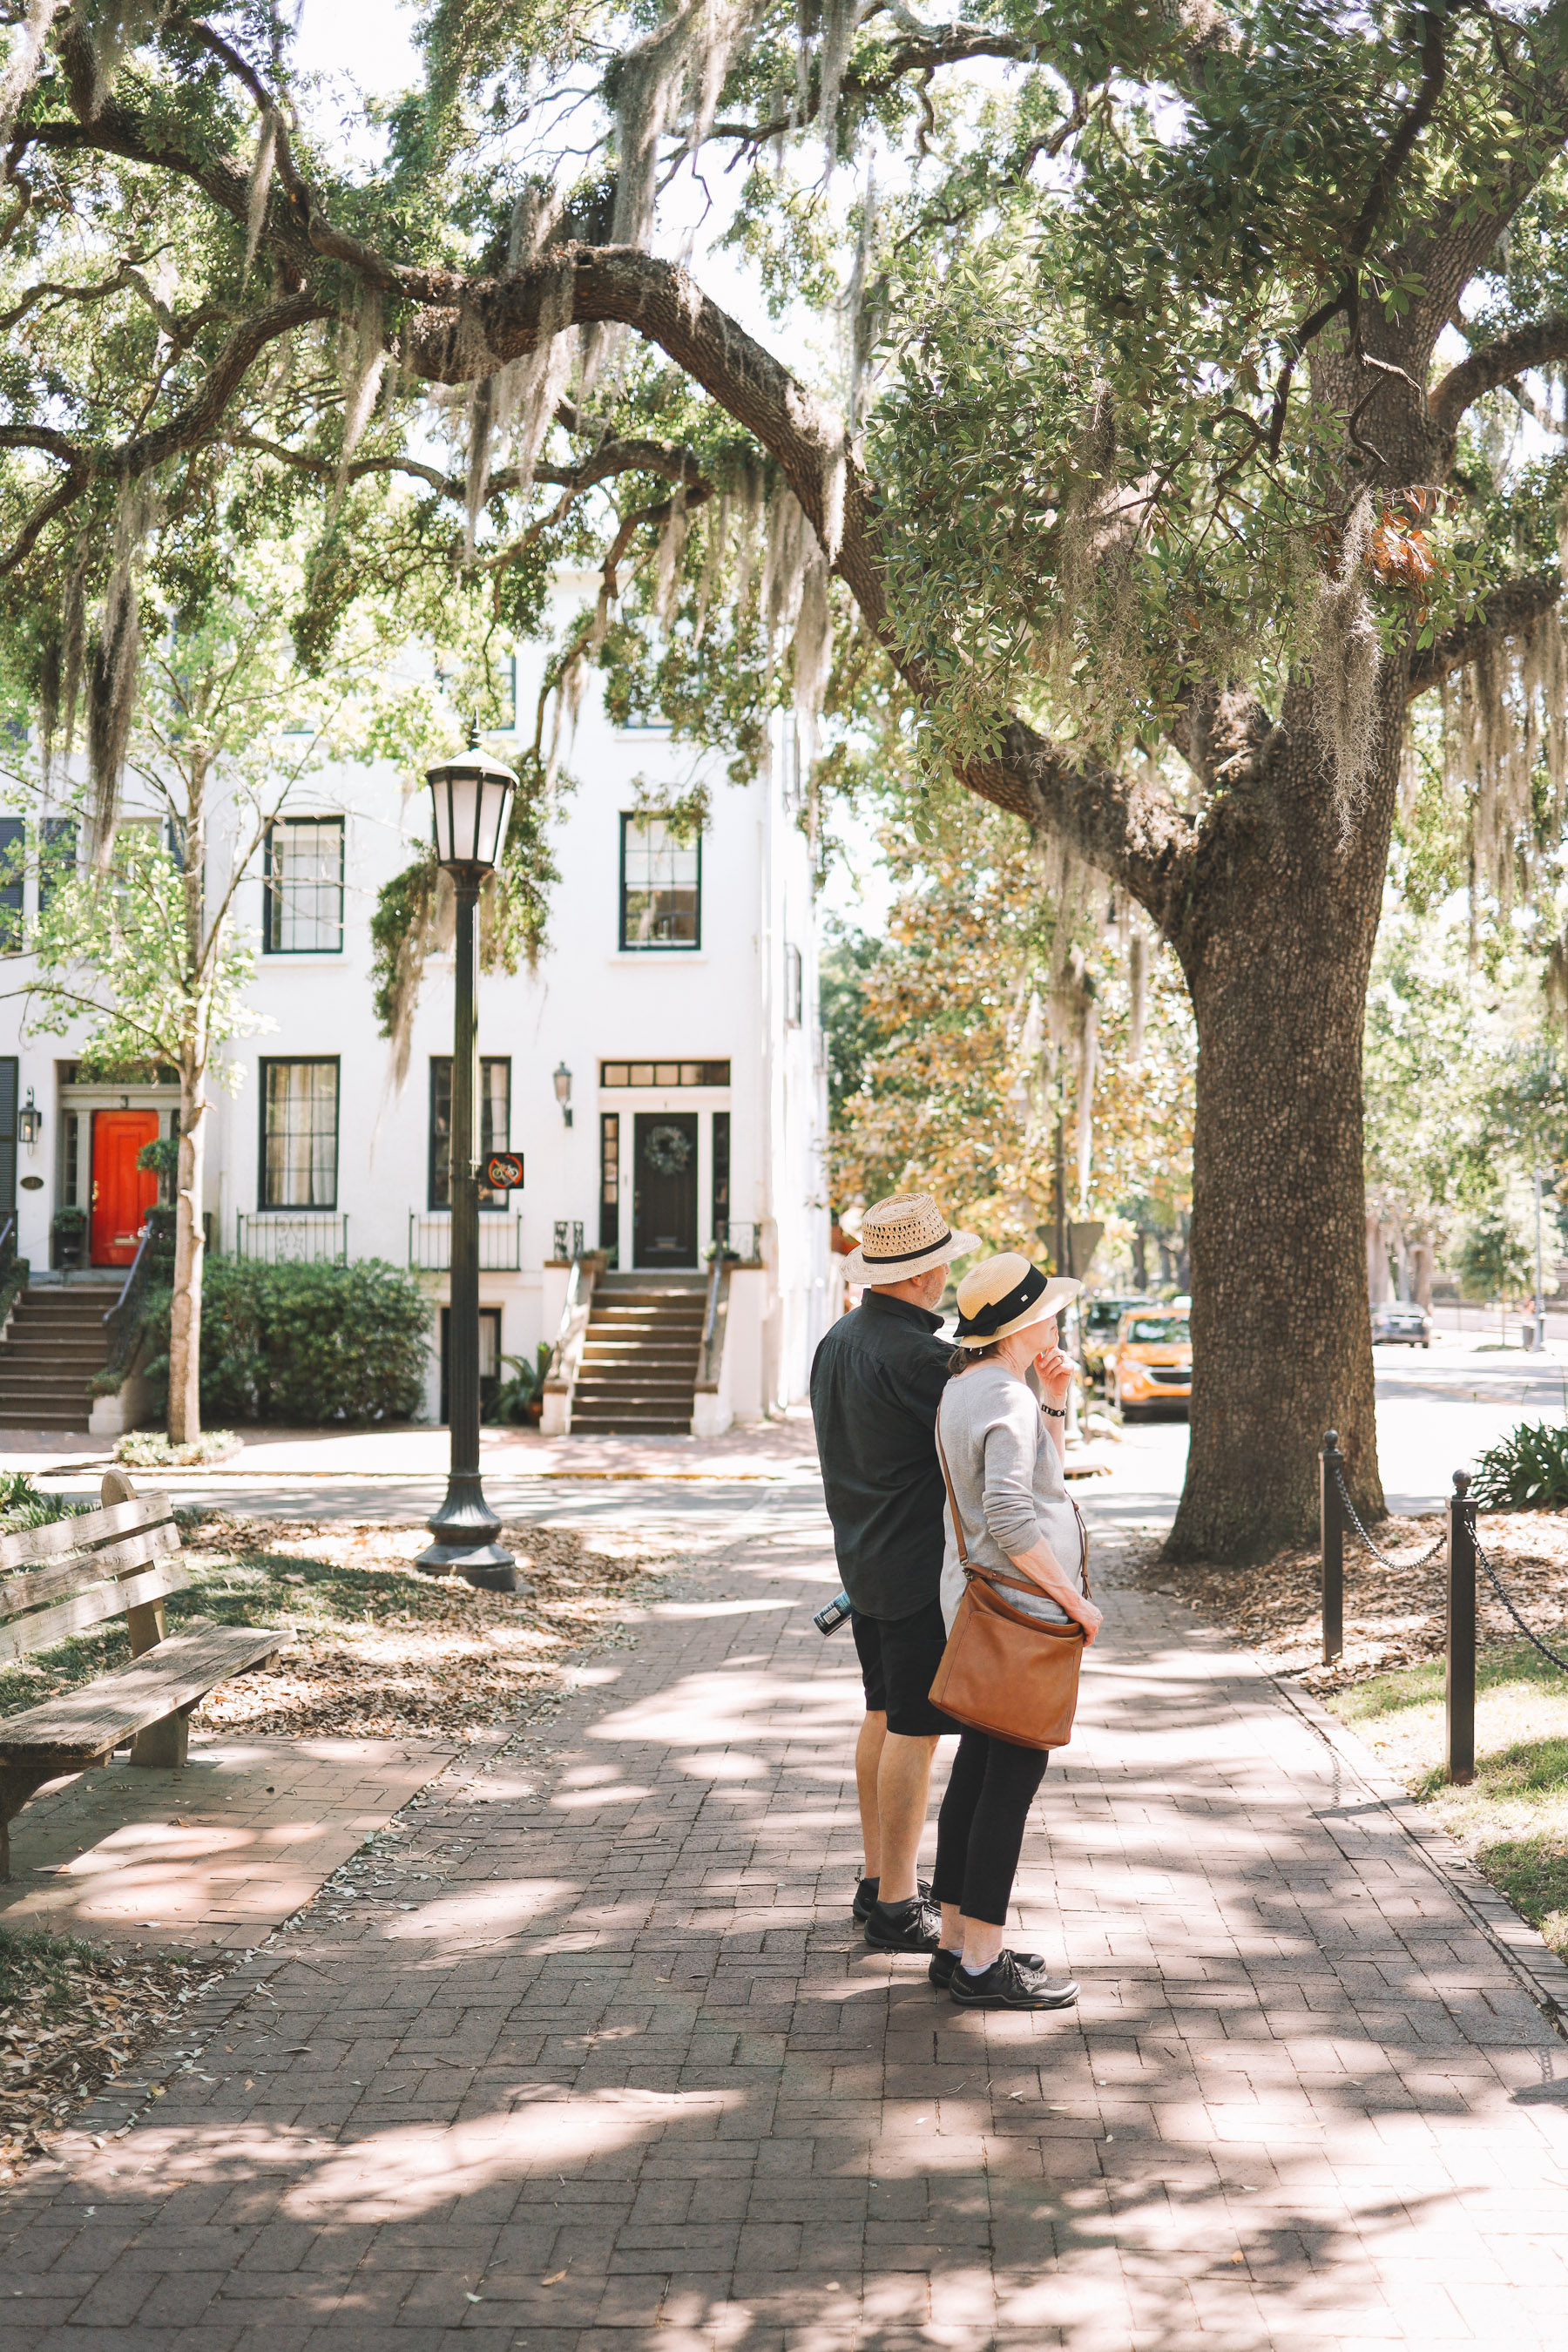 Savannah day itinerary for couples